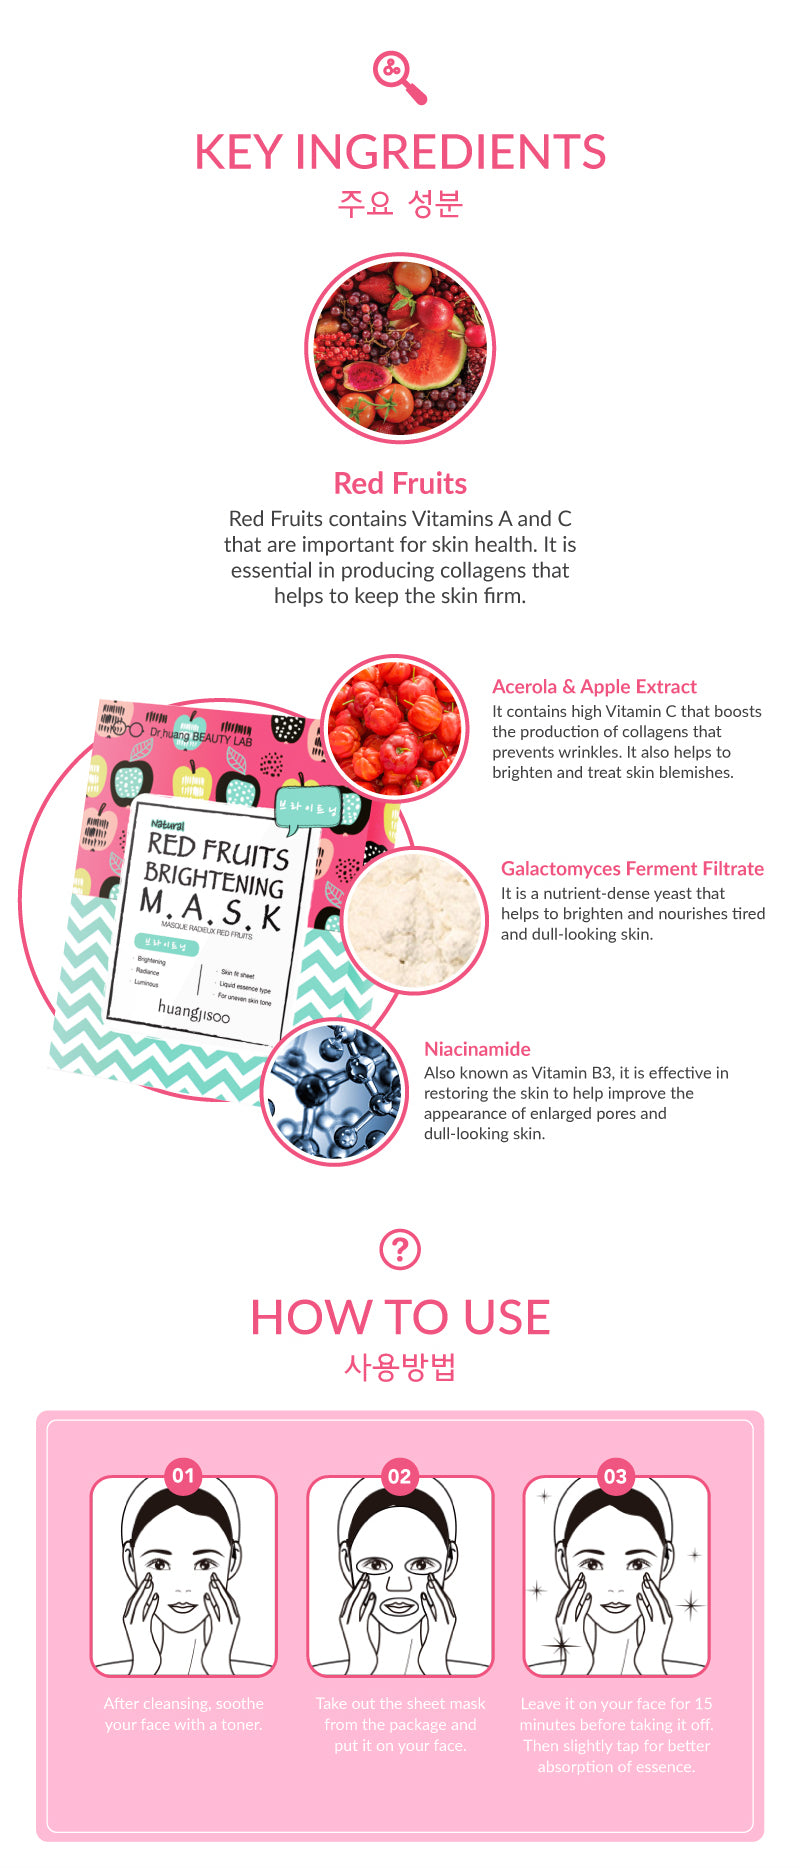 The ingredients inside the Huangjisoo Red Fruit Brightening Facial Mask sheet contains rice ferment, sodium hyaluronate, jasmine extracts, rosemary and ginseng extracts that help to keep your skin healthy with a glow. The brightening ingredients like niacinamide and polyglutamic acid helps your skin hydrated and brighten your overall skin tone.